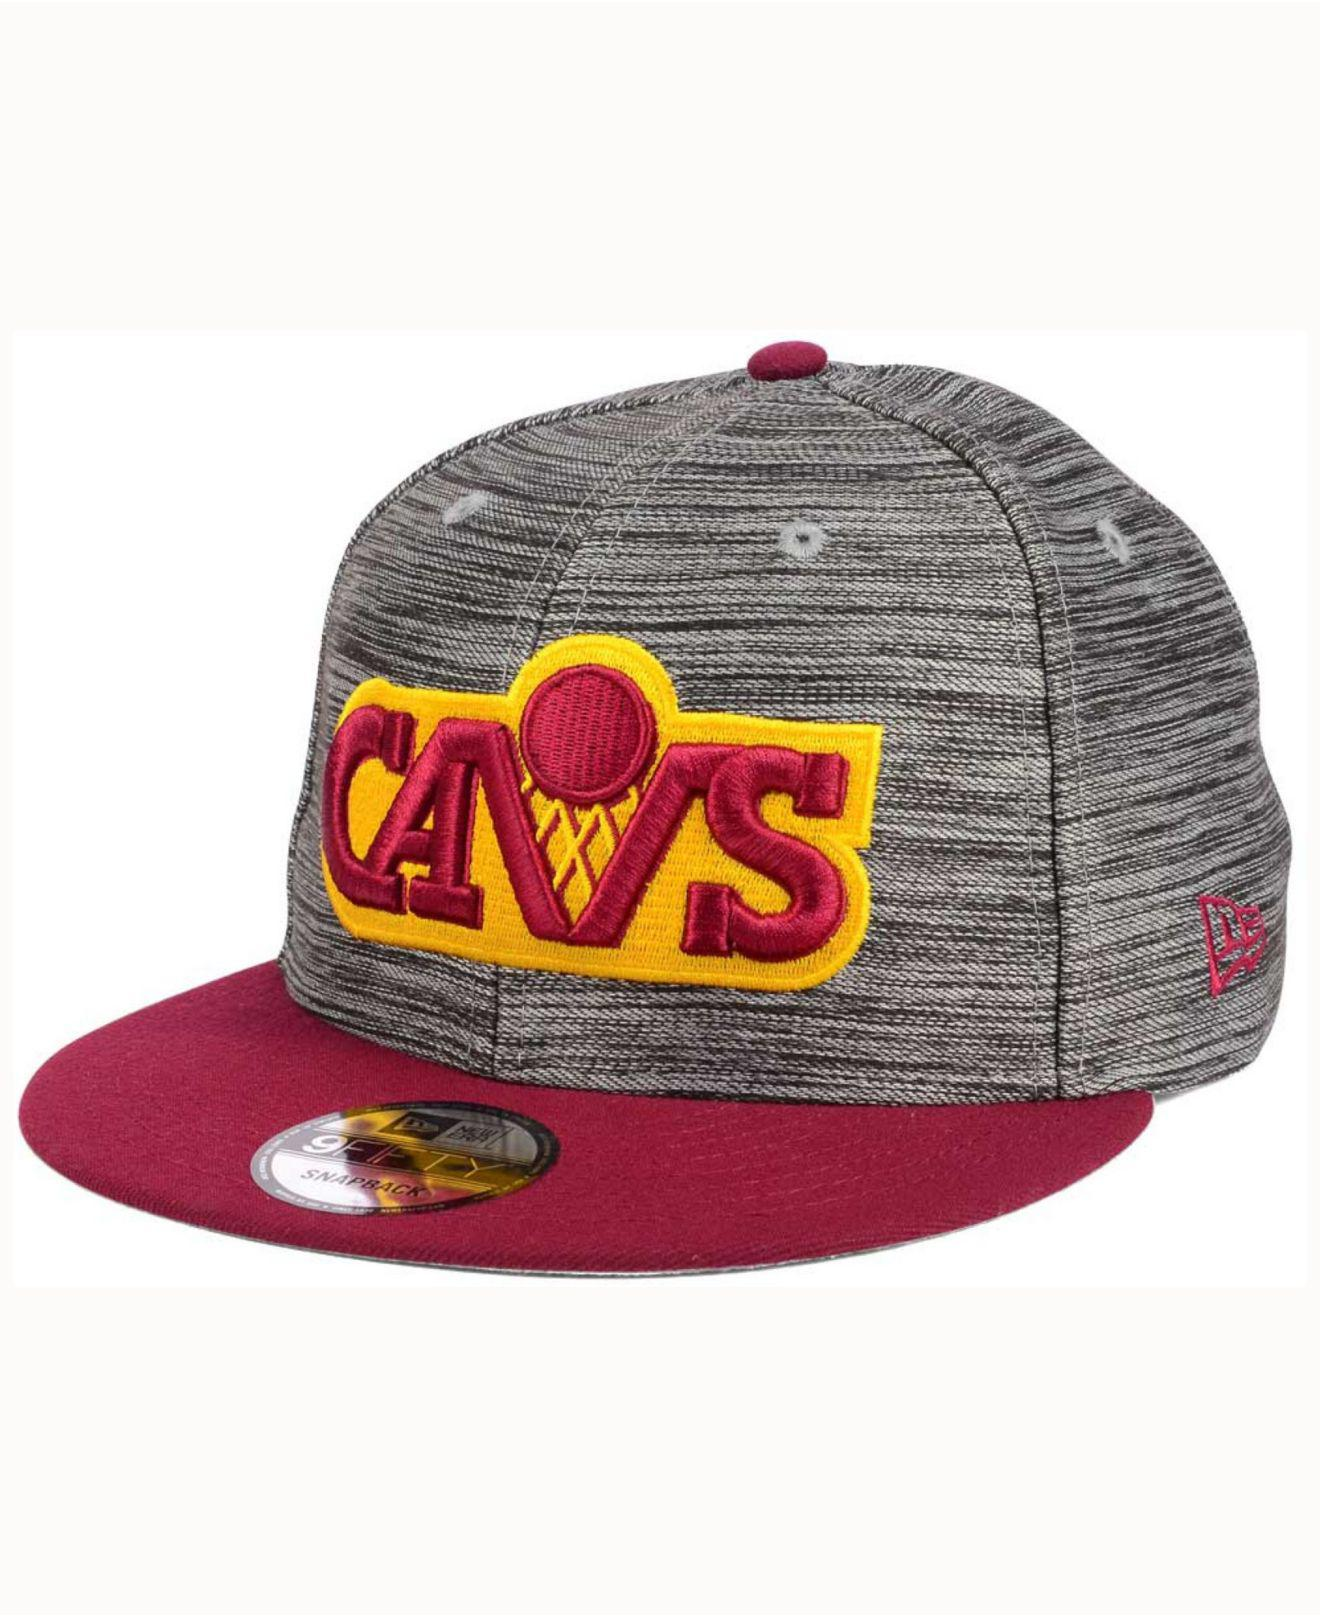 quality design c66e2 e4a63 KTZ. Men s Cleveland Cavaliers Blurred Trick 9fifty Snapback Cap